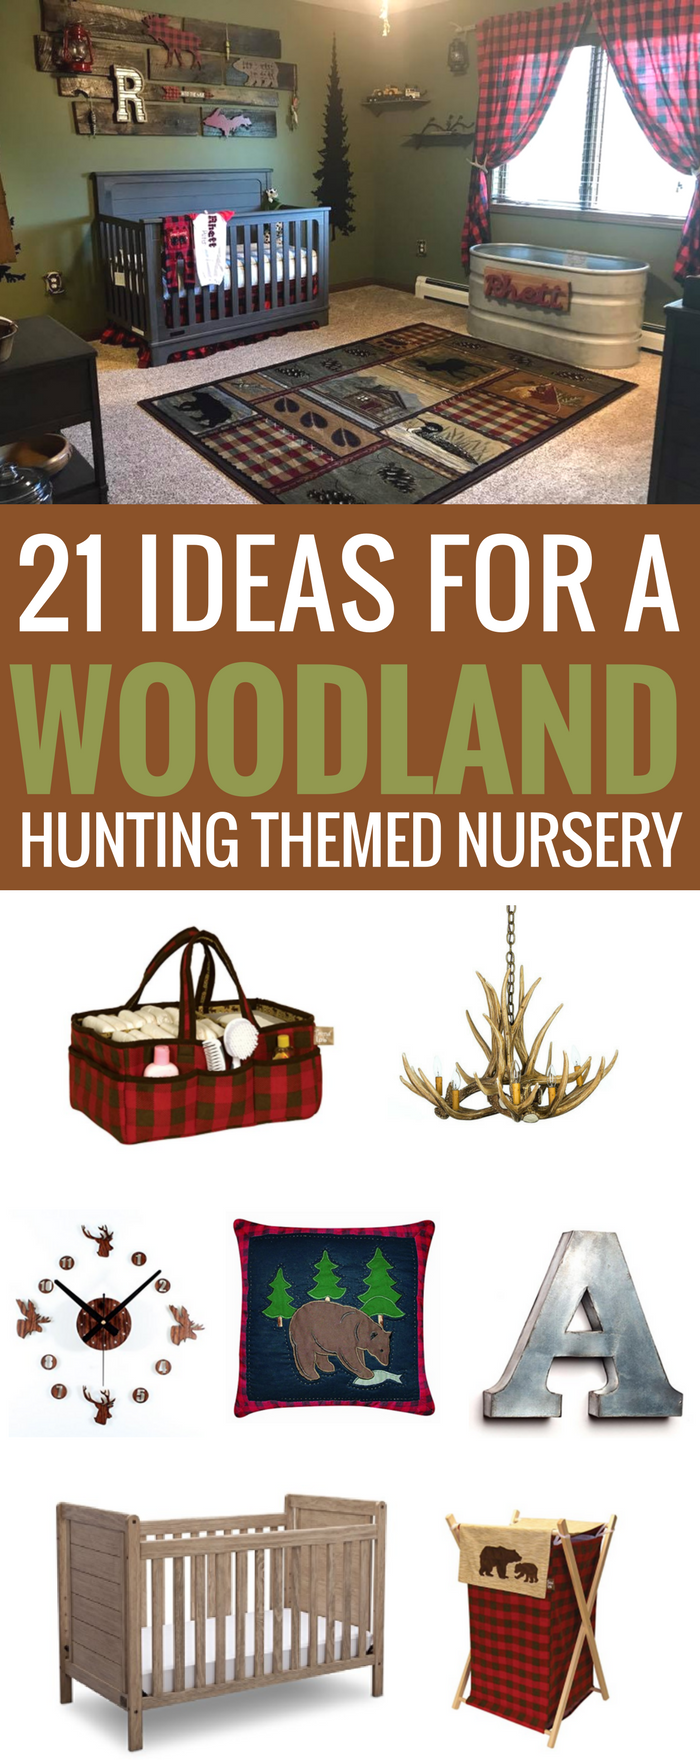 Ideas For A Woodland Hunting Themed Nursery